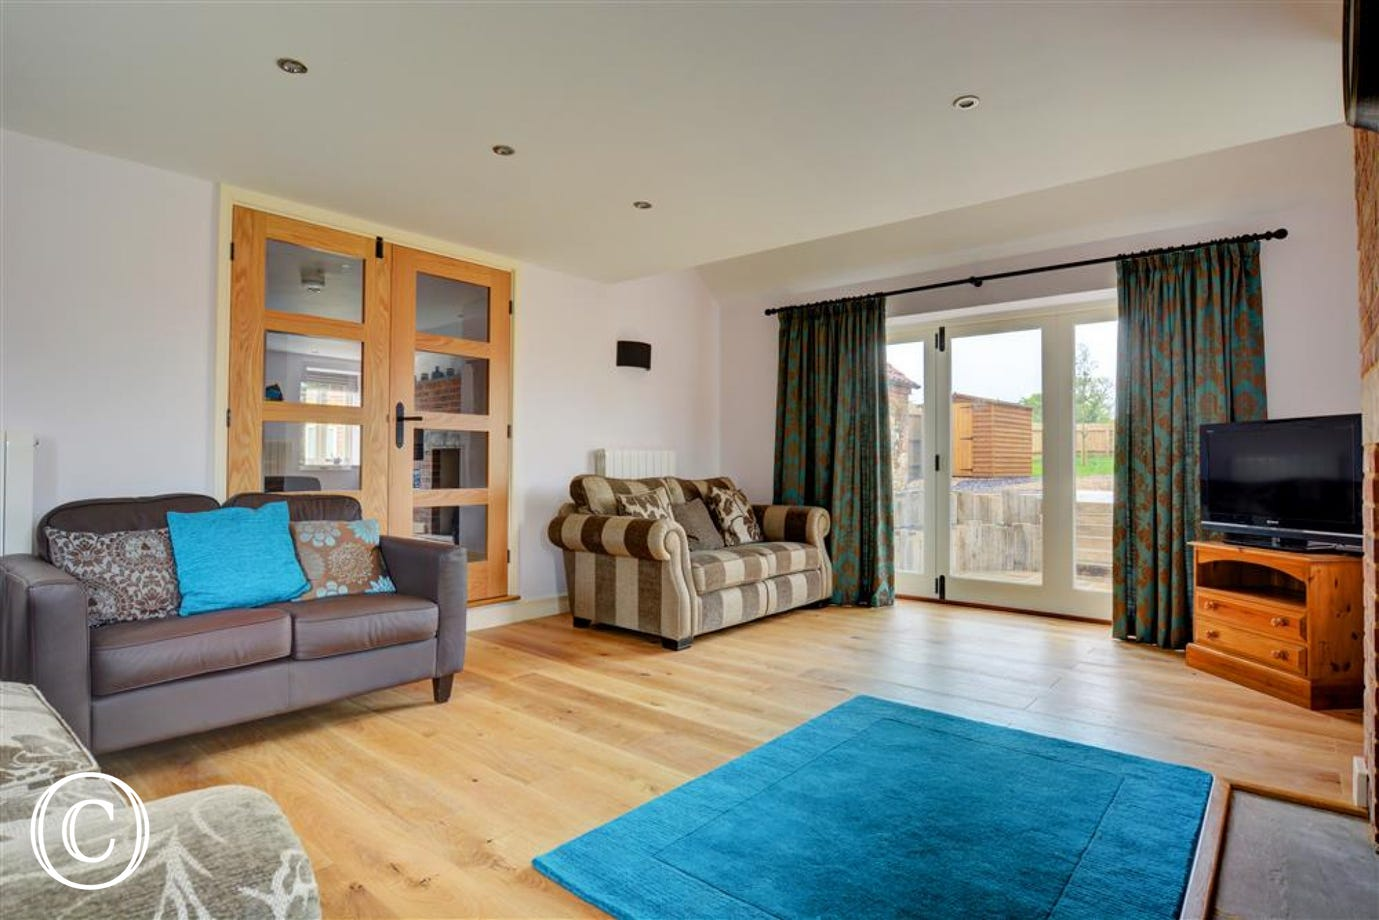 Lovely spacious sitting room